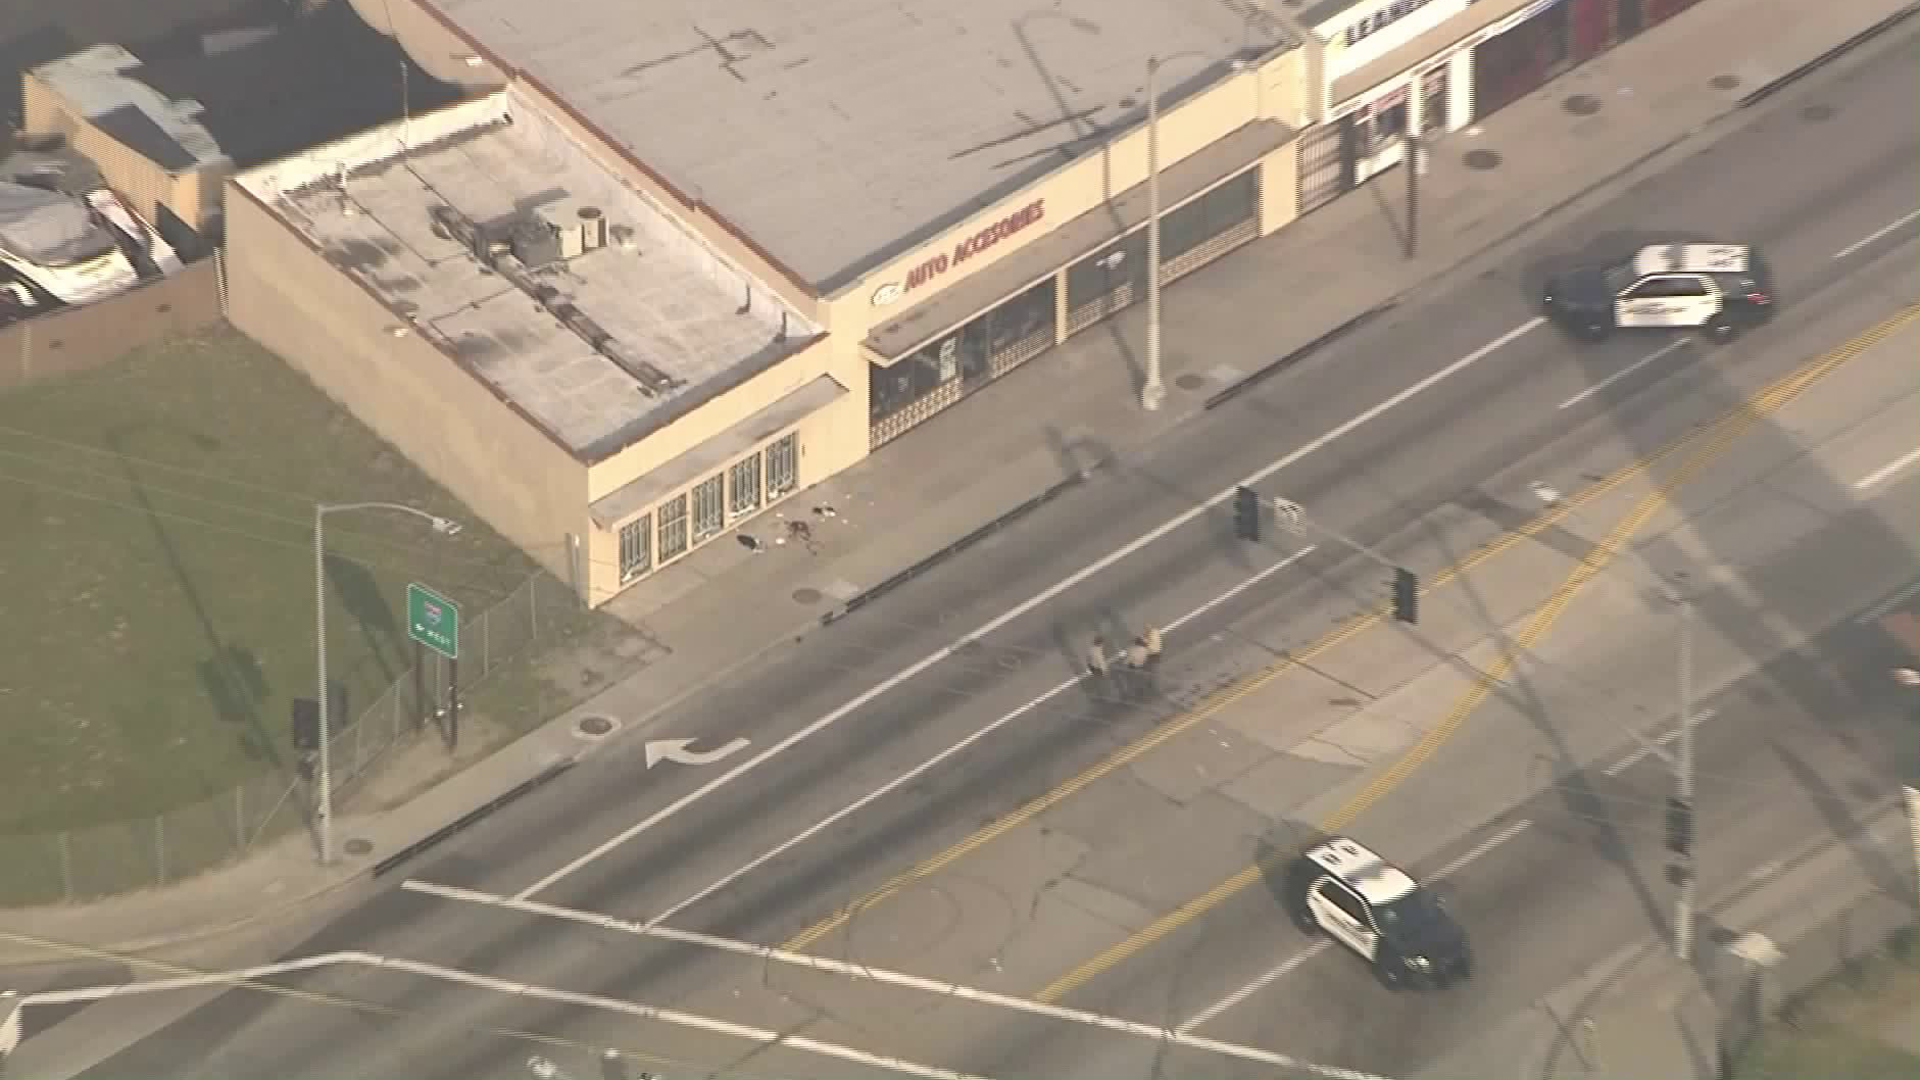 Police investigated a shooting involving officers in South Gate on Jan. 29, 2019. (Credit: KTLA)